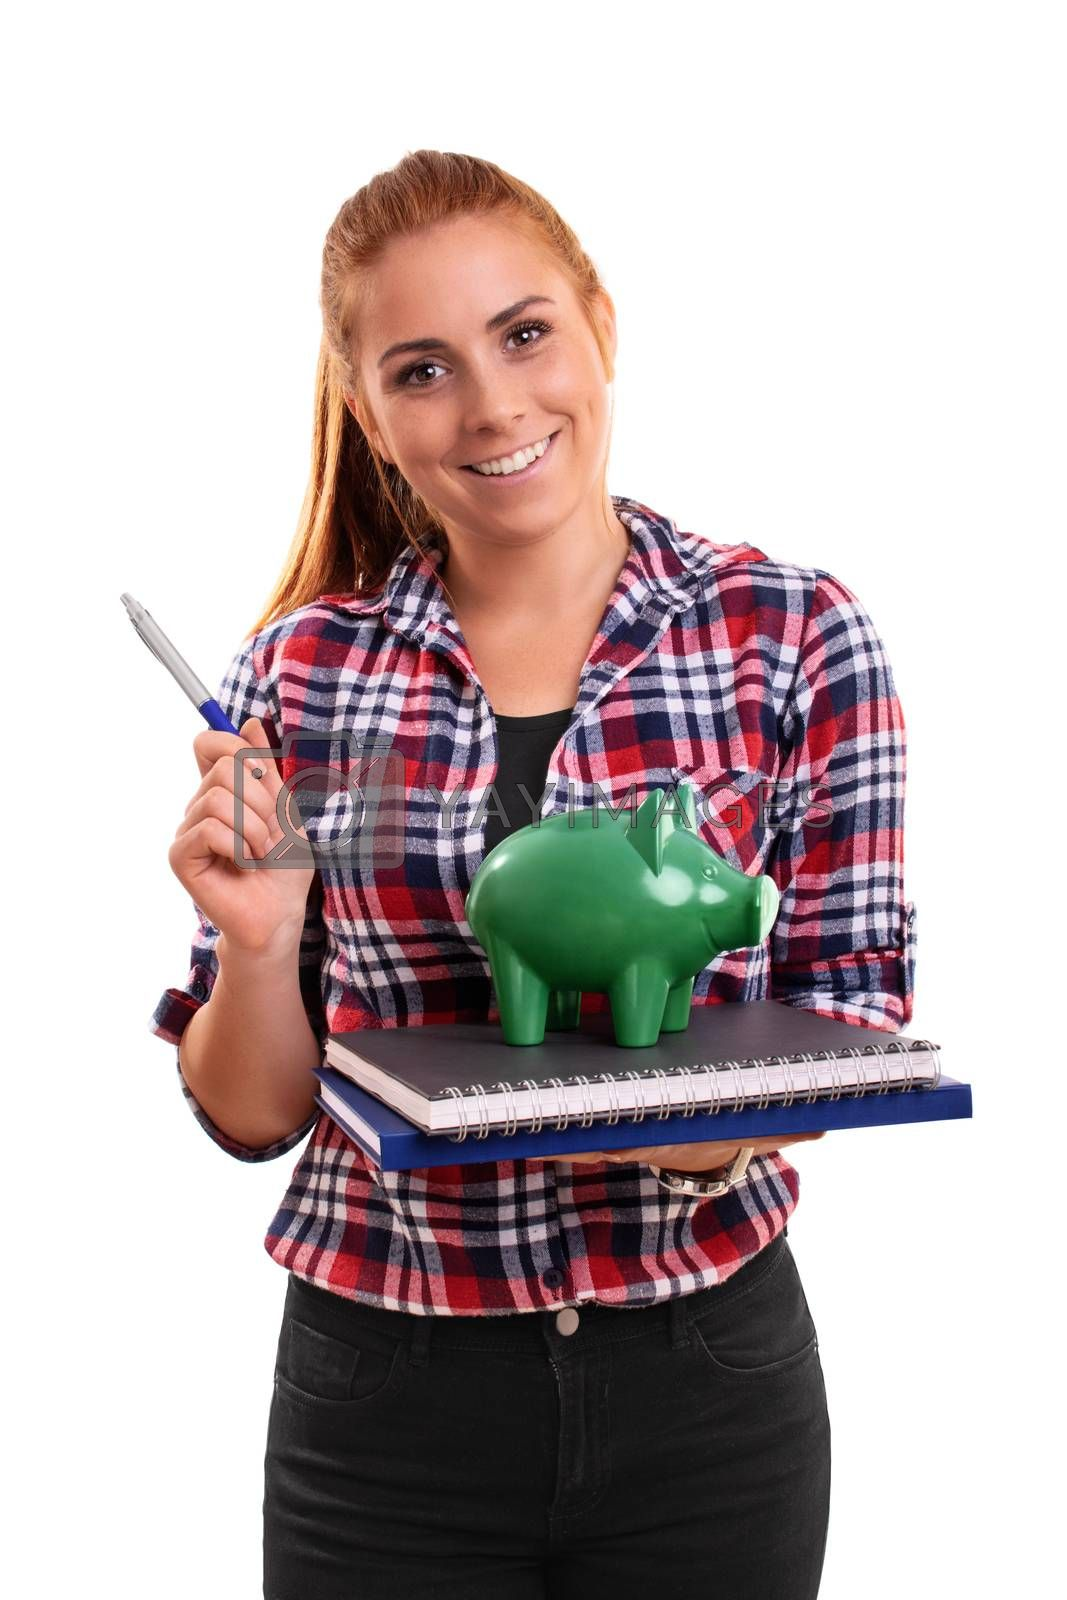 Smiling young student holding a green piggy bank on a stack of books, pointing with a pen, isolated on white background.